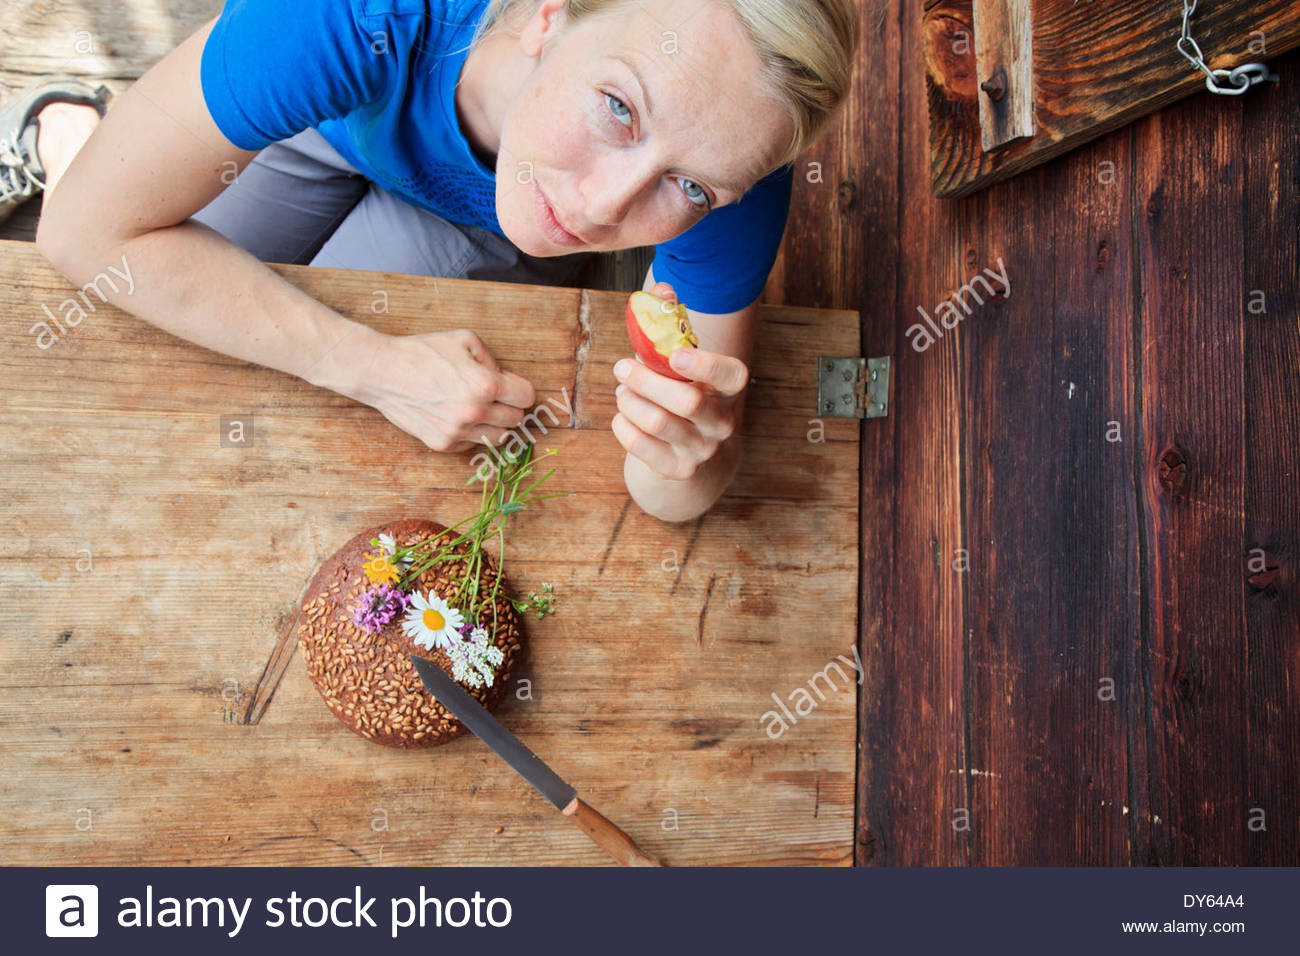 Woman enjoying a snack on a farm, Kloaschau Valley, Bayrischzell, Bavaria, Germany - Stock Image